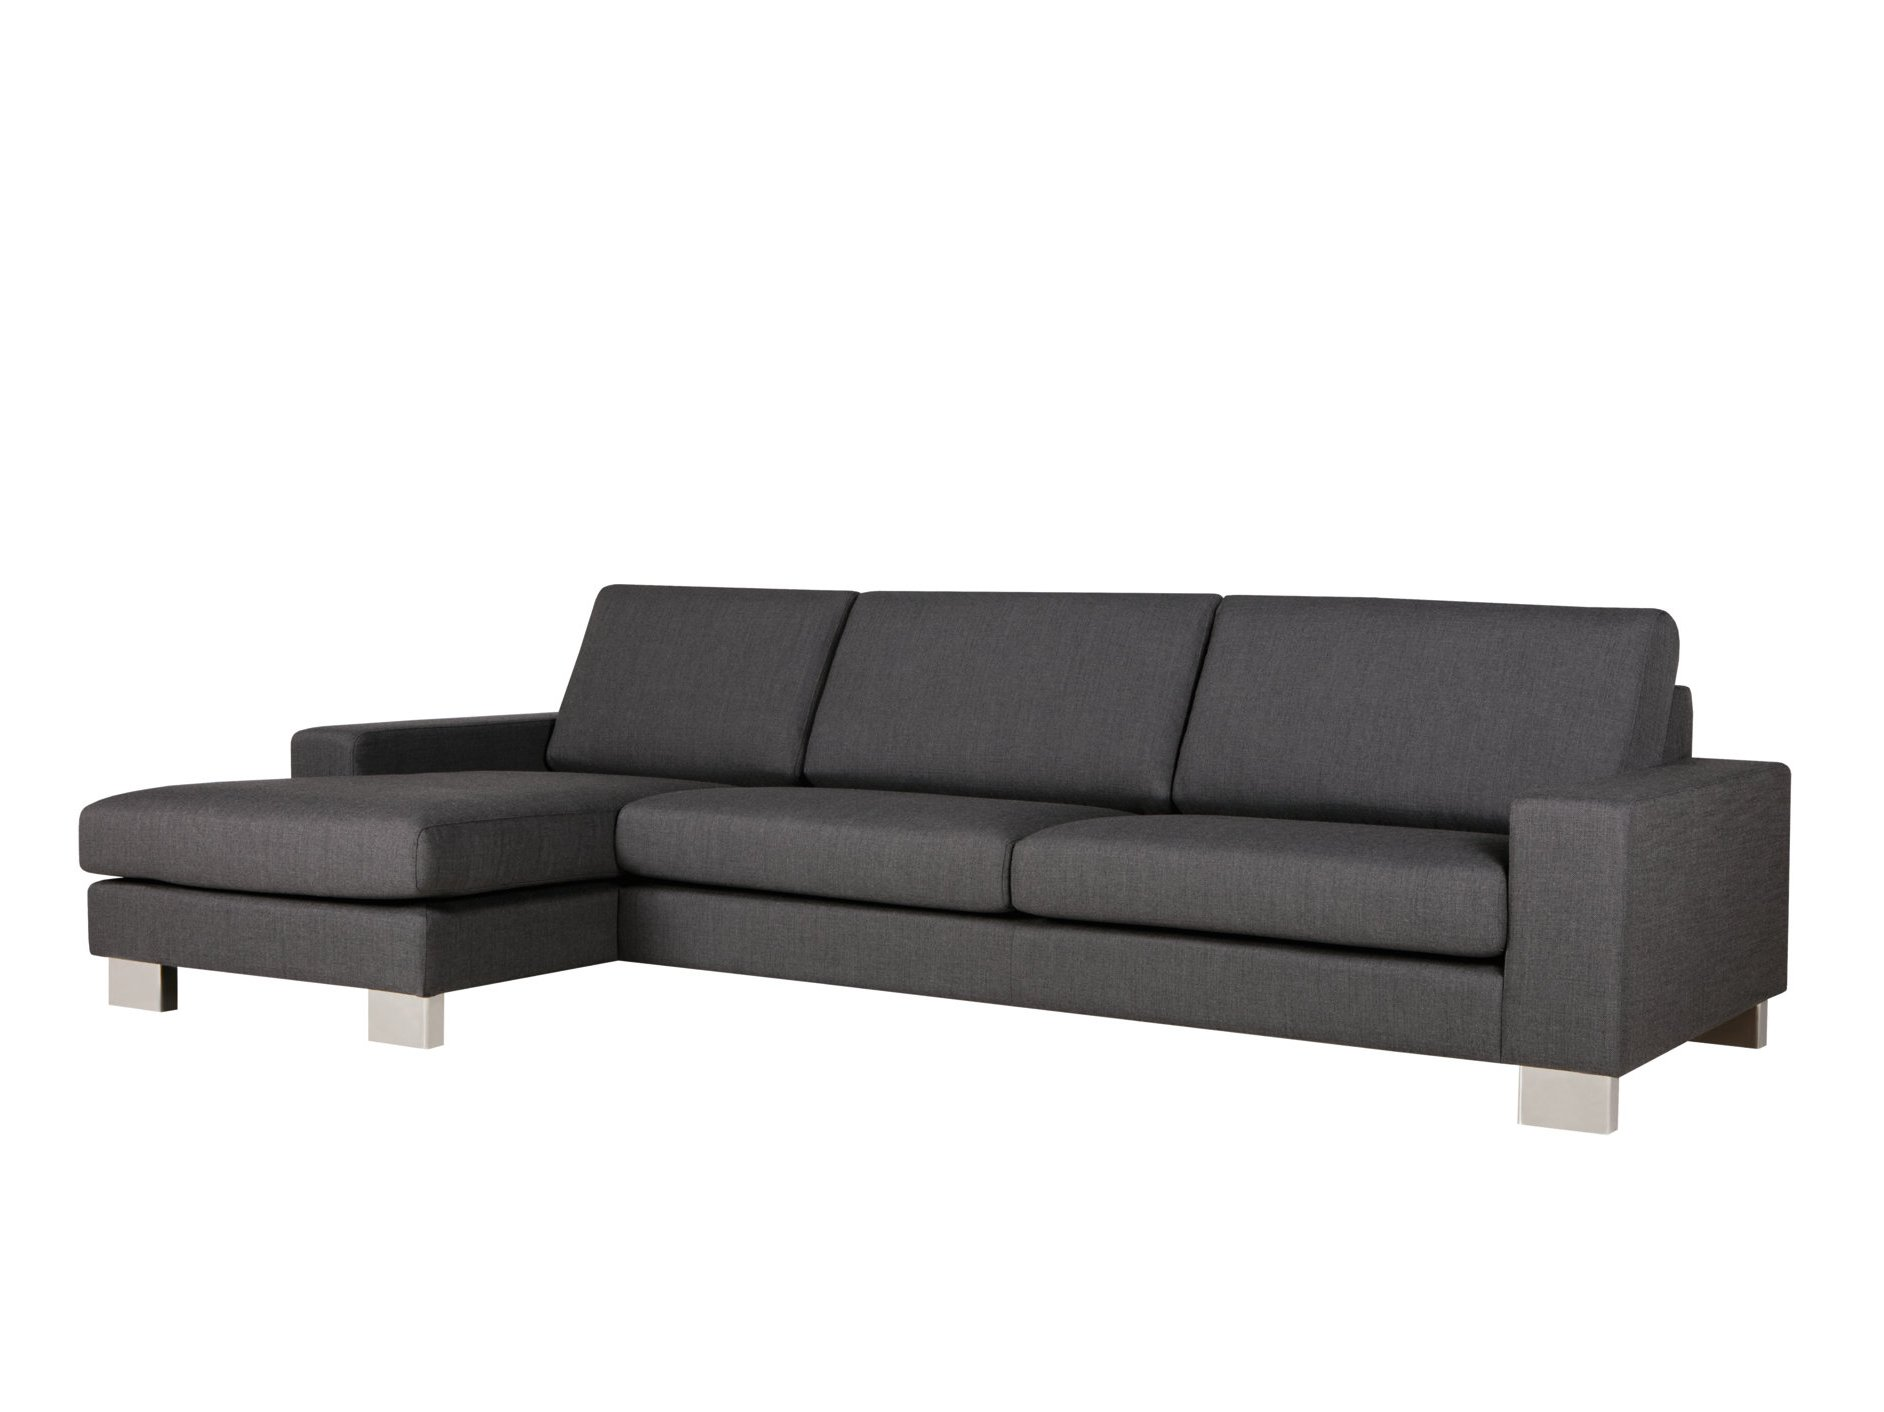 Quattro sofa with chaise longue quattro collection by sits for 2 5 seater sofa with chaise